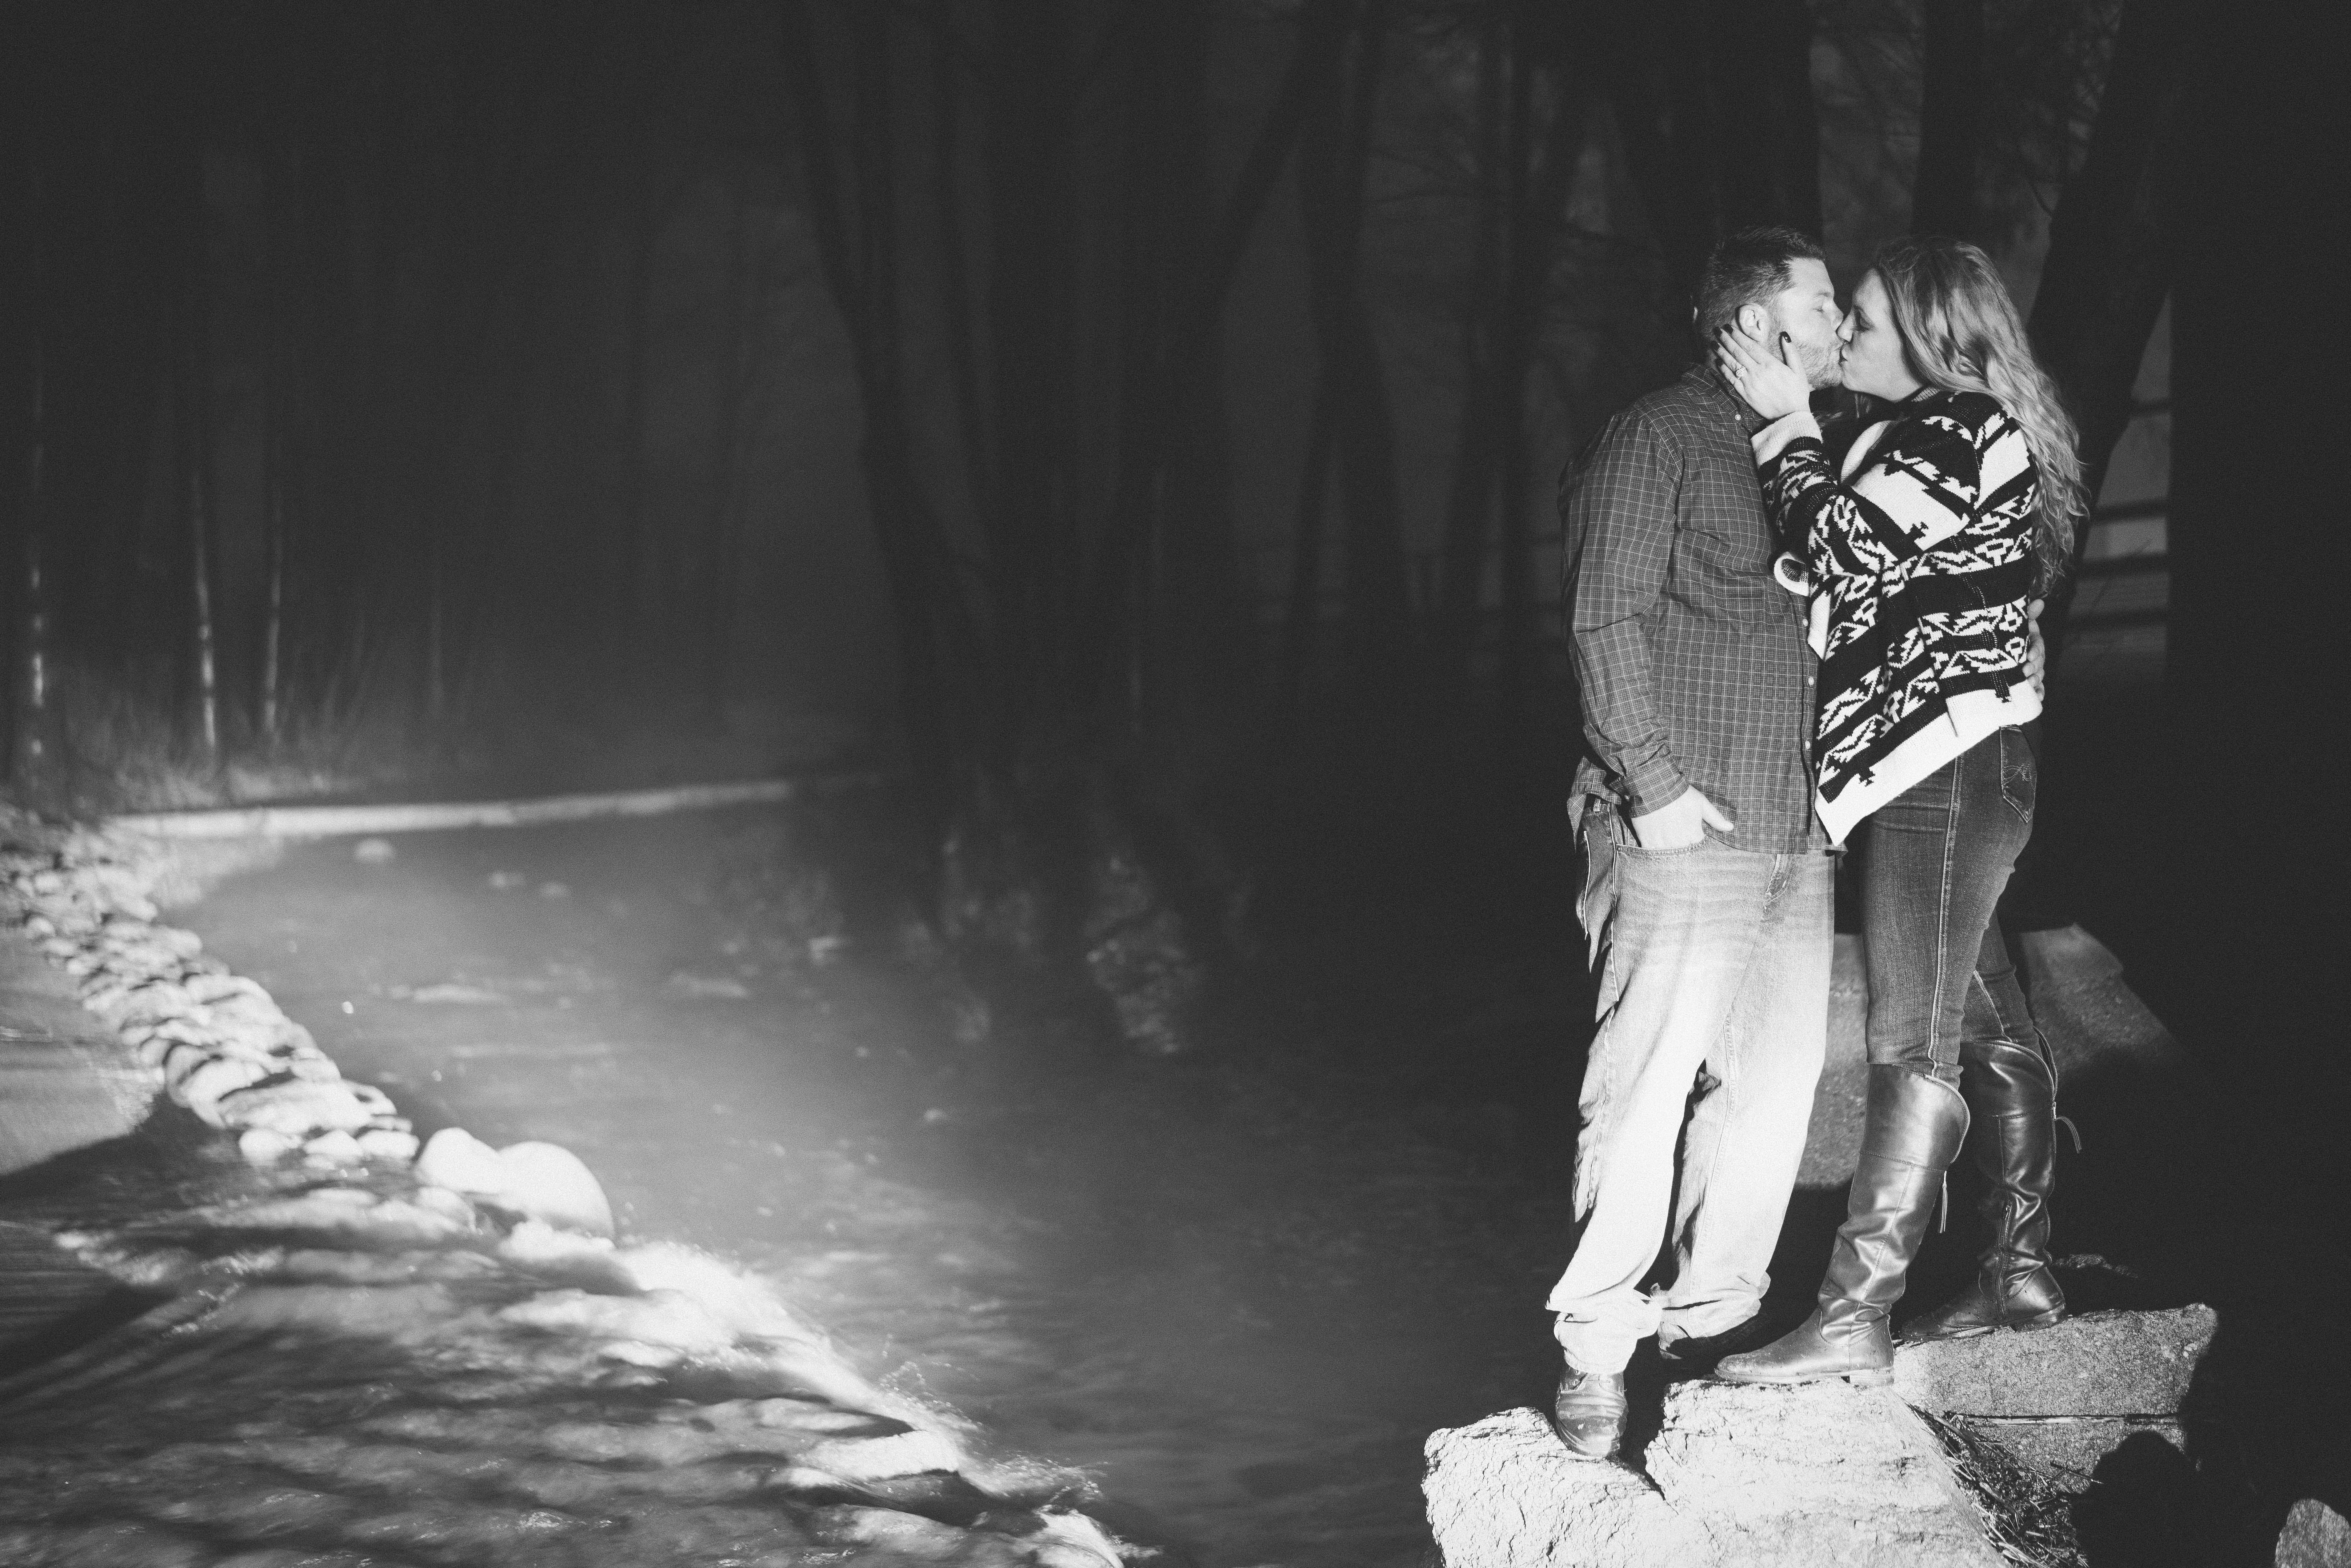 Nighttime Kiss by the Creek